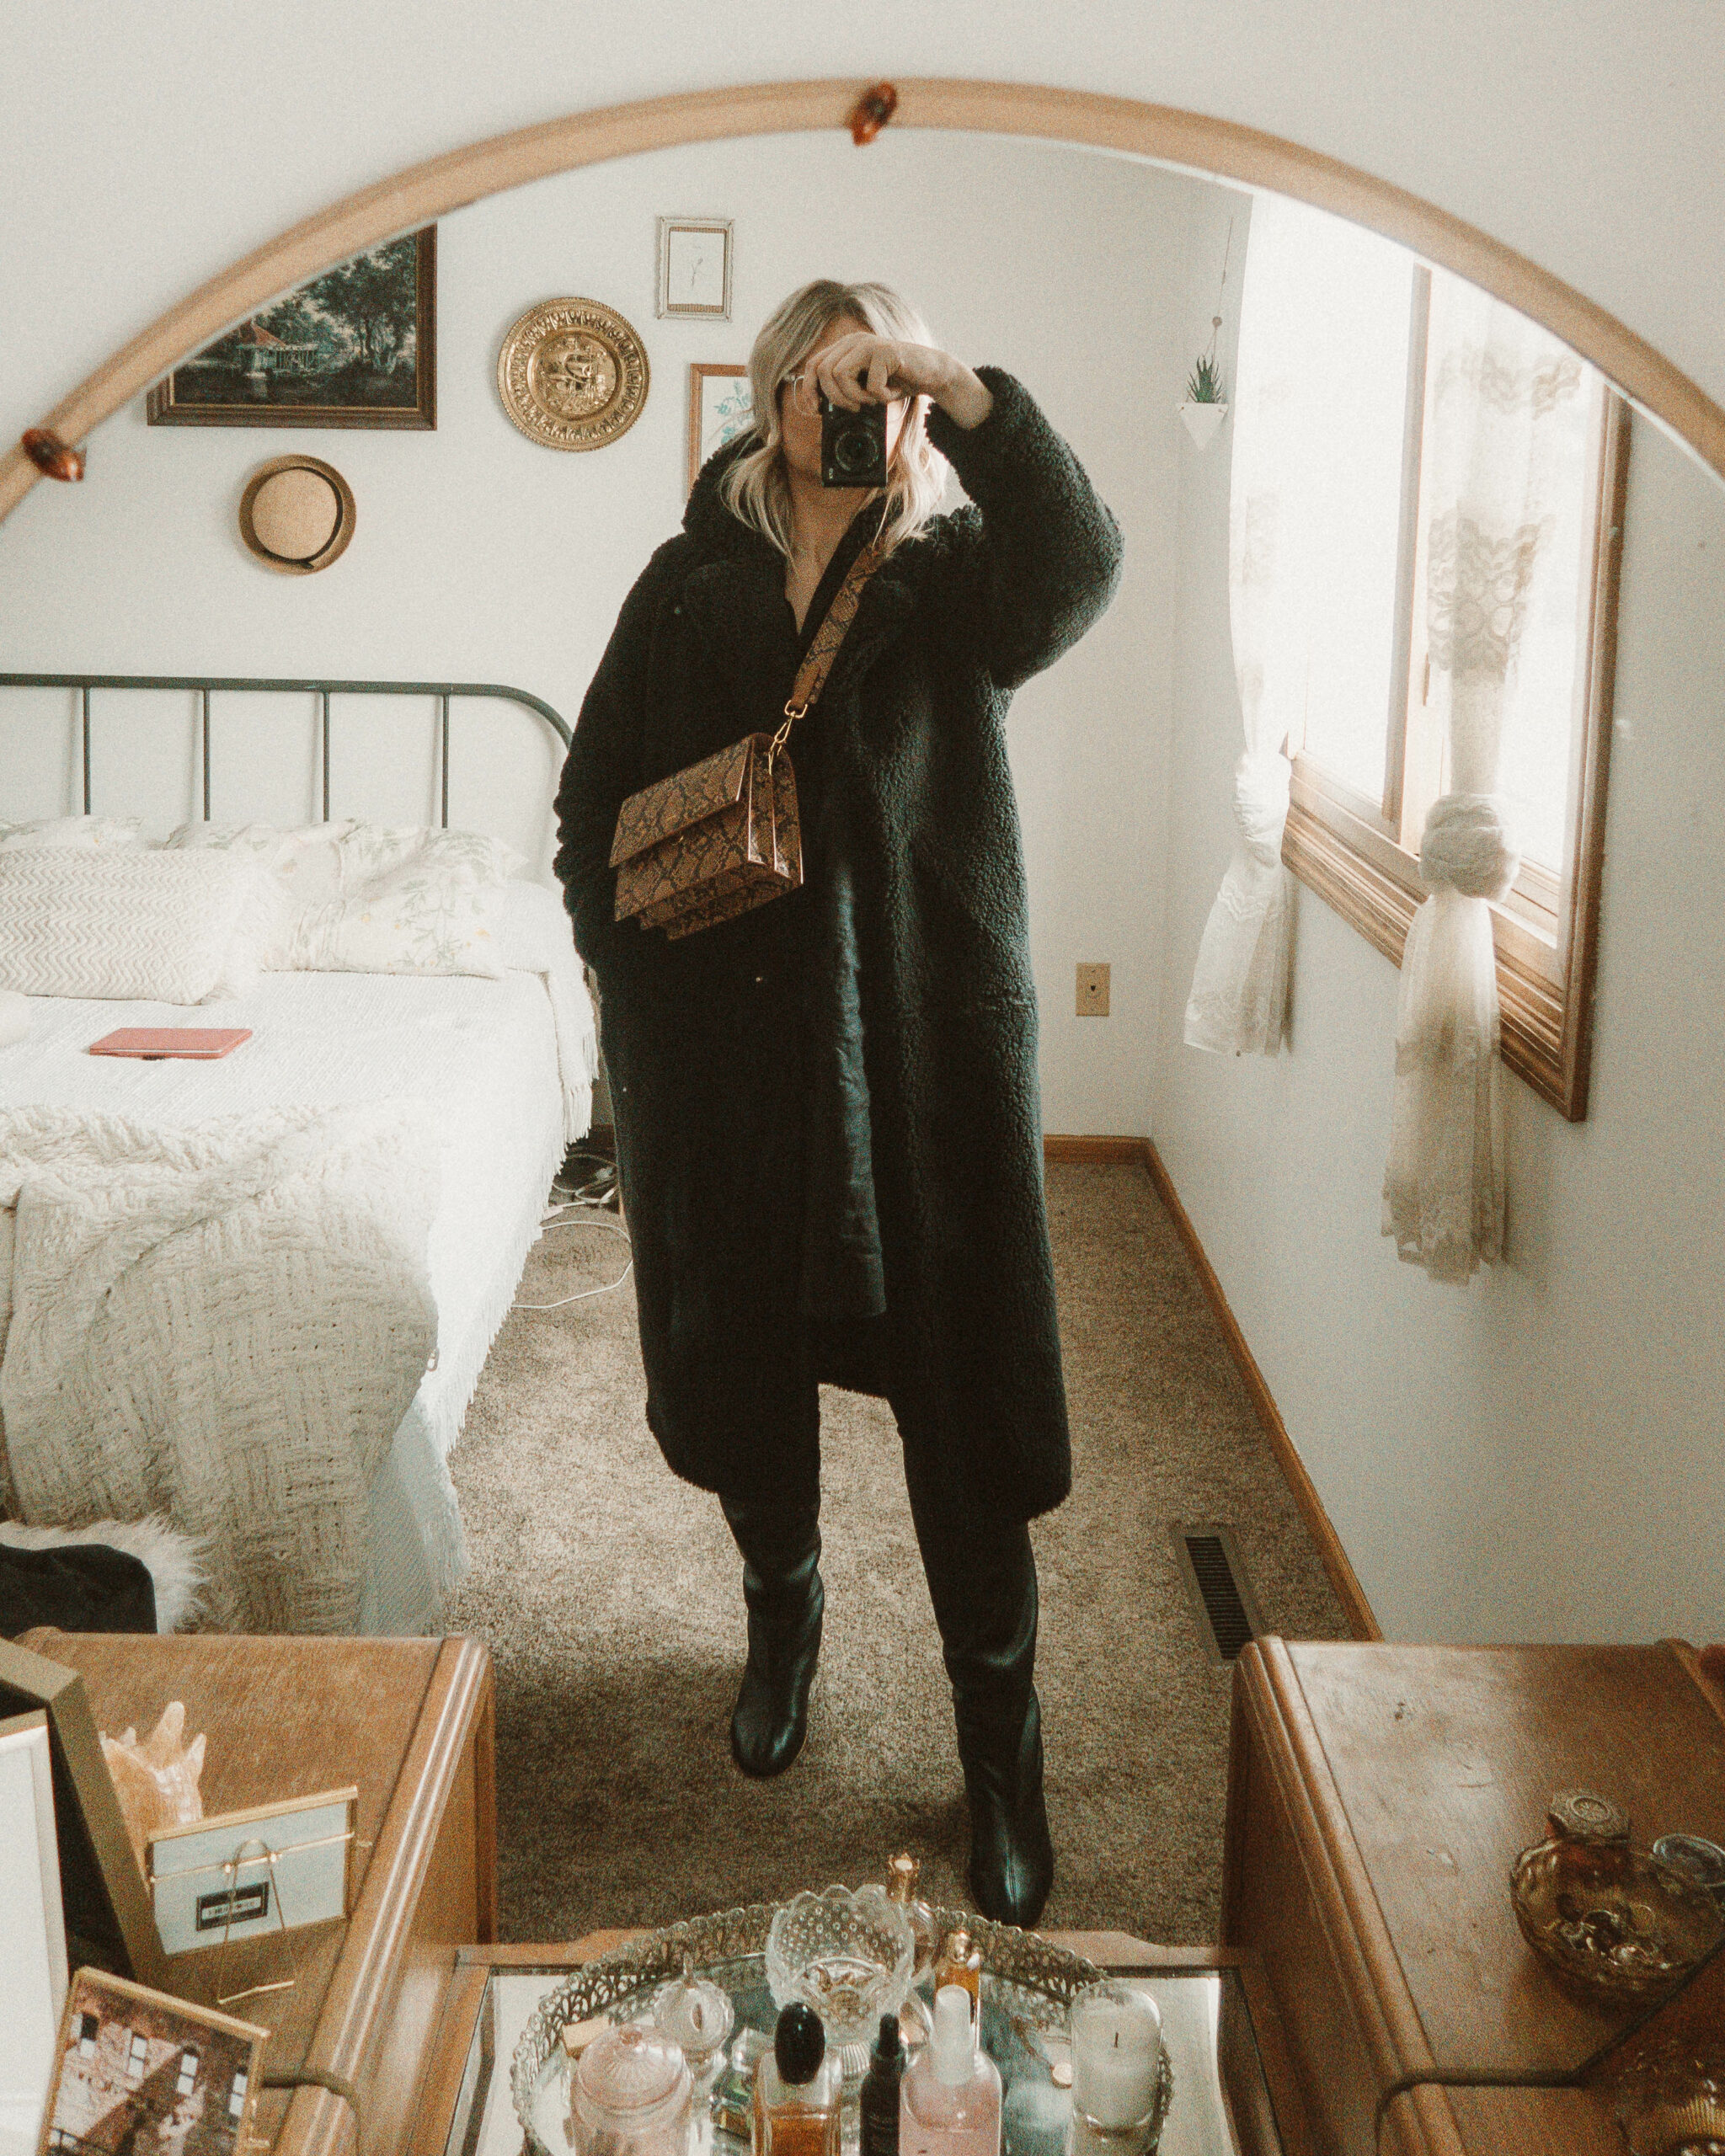 Weekend Outfit Roundup Vol. 1, Long Black Teddy Bear Coat, Sugar Candy Mountain Linen Dress, Everlane Knee High Boots, Snake Print Bag